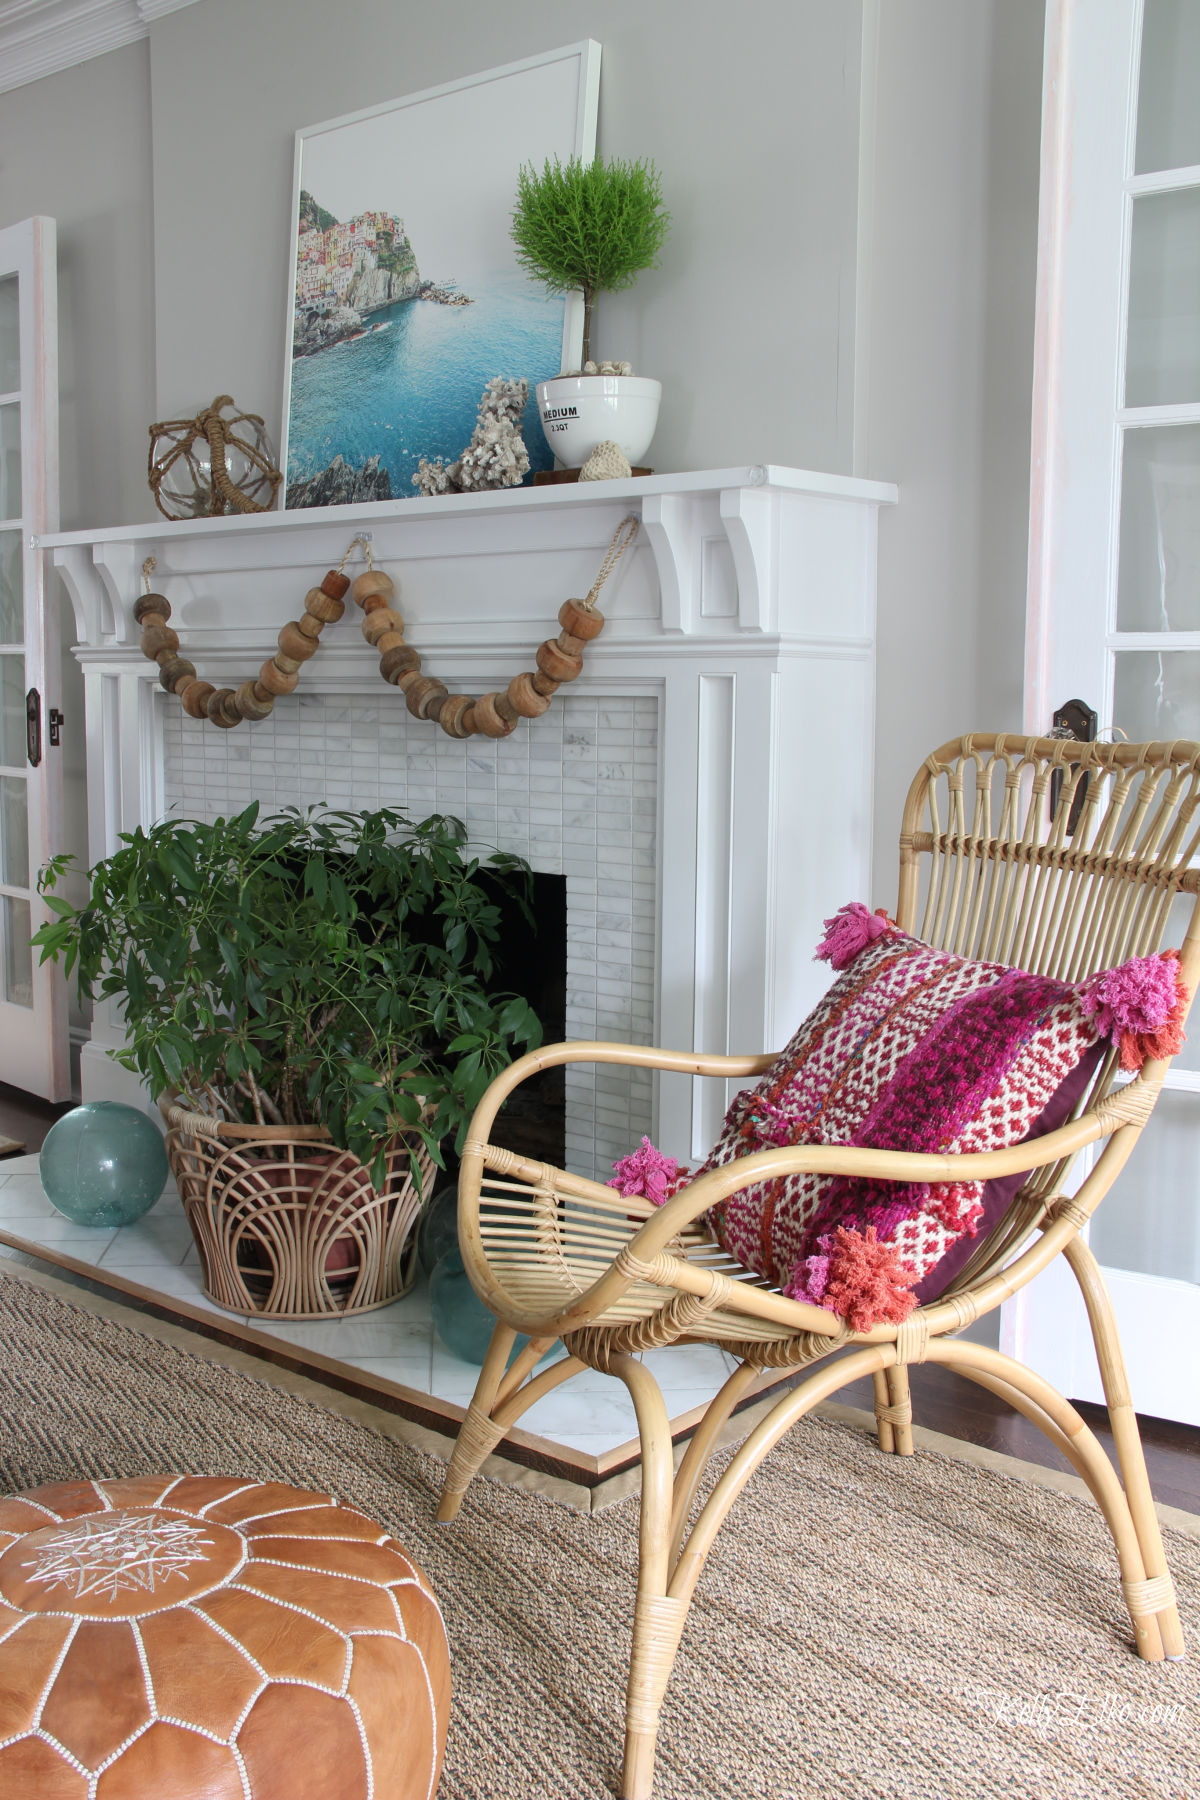 Love this coastal summer mantel and the big chunky wood bead garland kellyelko.com #coastal #mantel #summerdecor #coastaldecor #summermantel #manteldecor #houseplants #rattan #boho #bohodecor #eclecticdecor